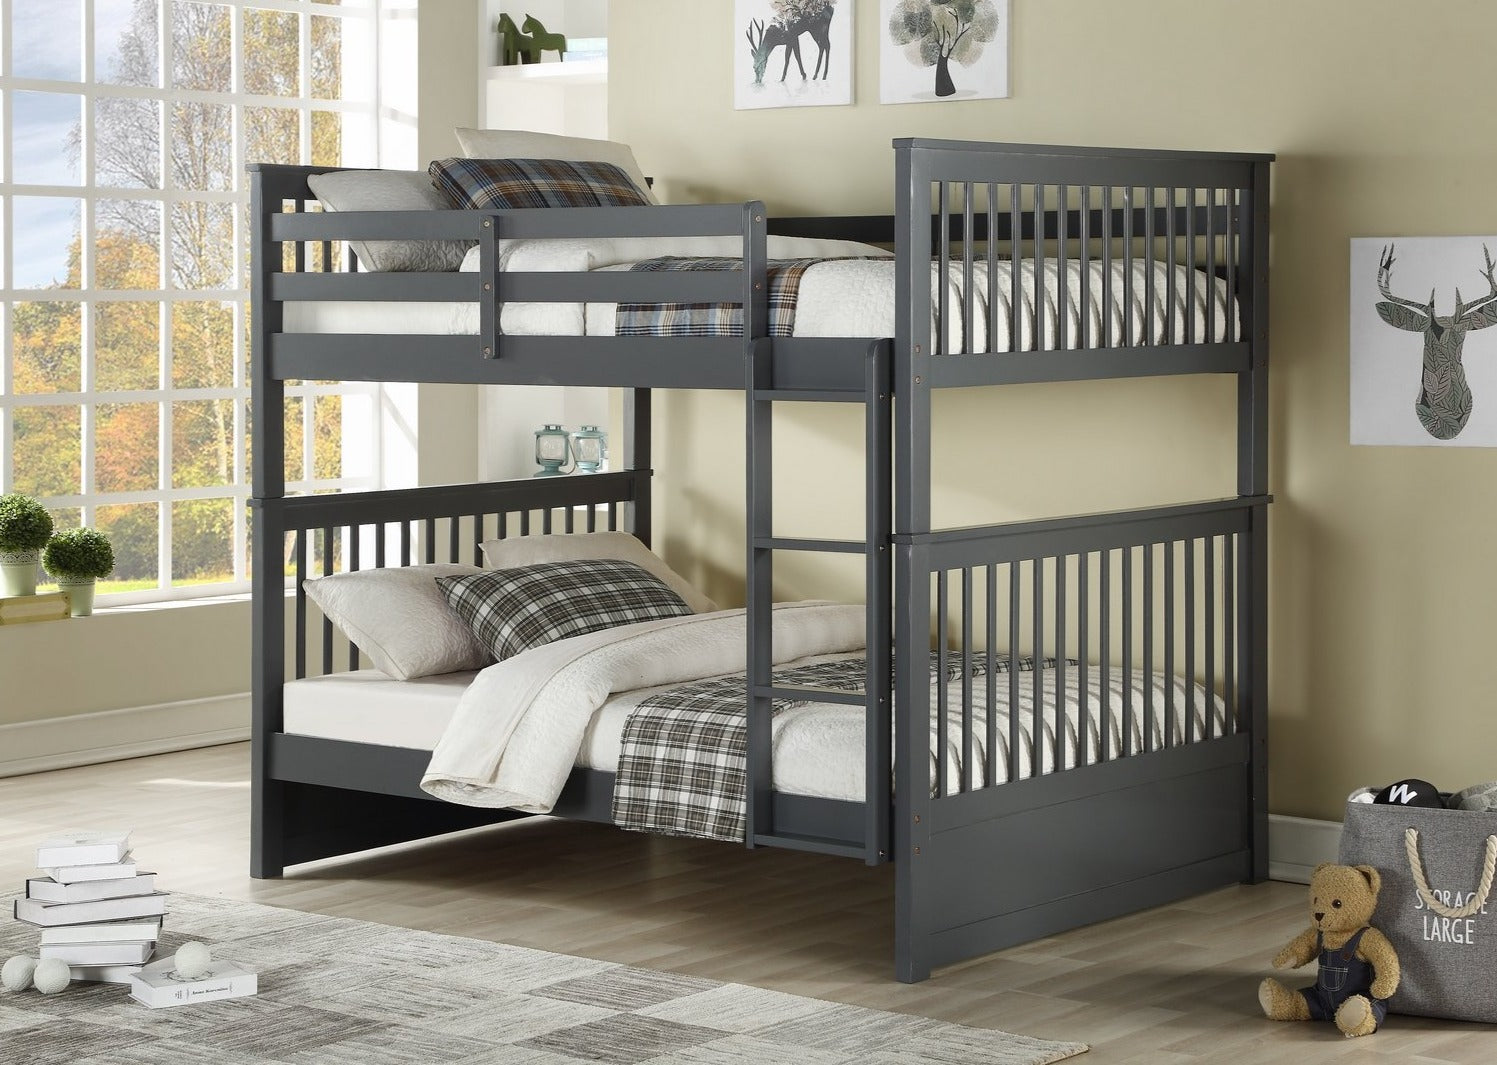 B 123G - Full / Full Mission Bunk Bed - Grey